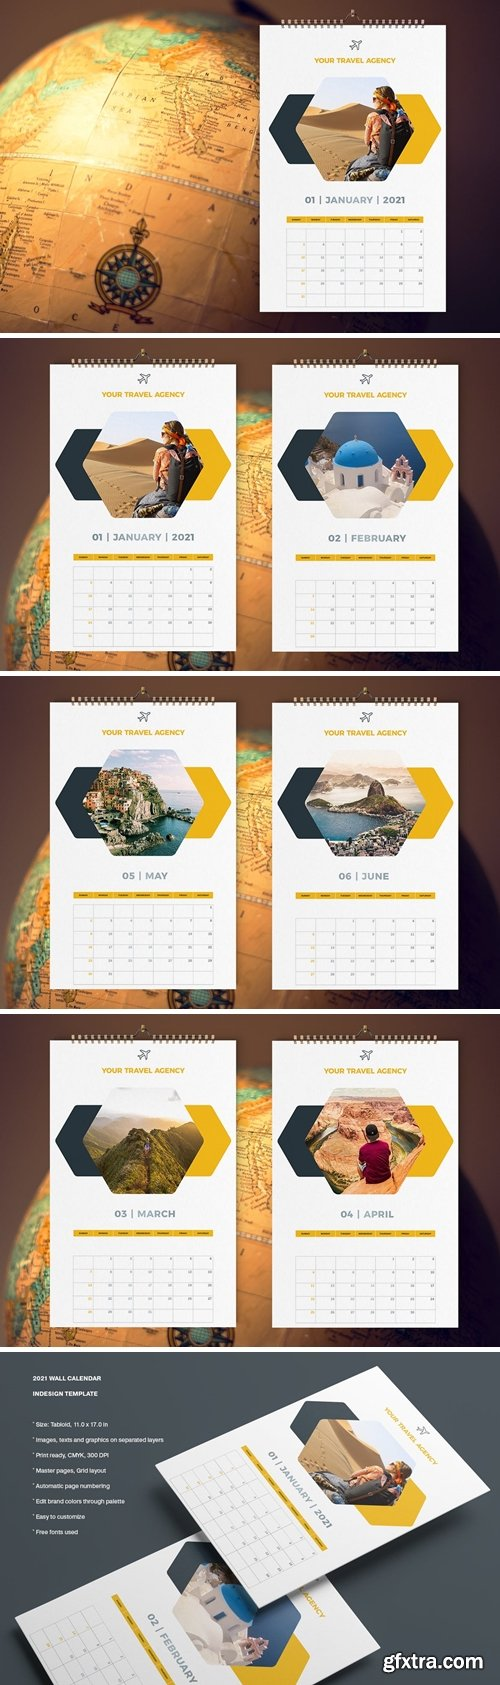 Travel Calendar 2021 Template